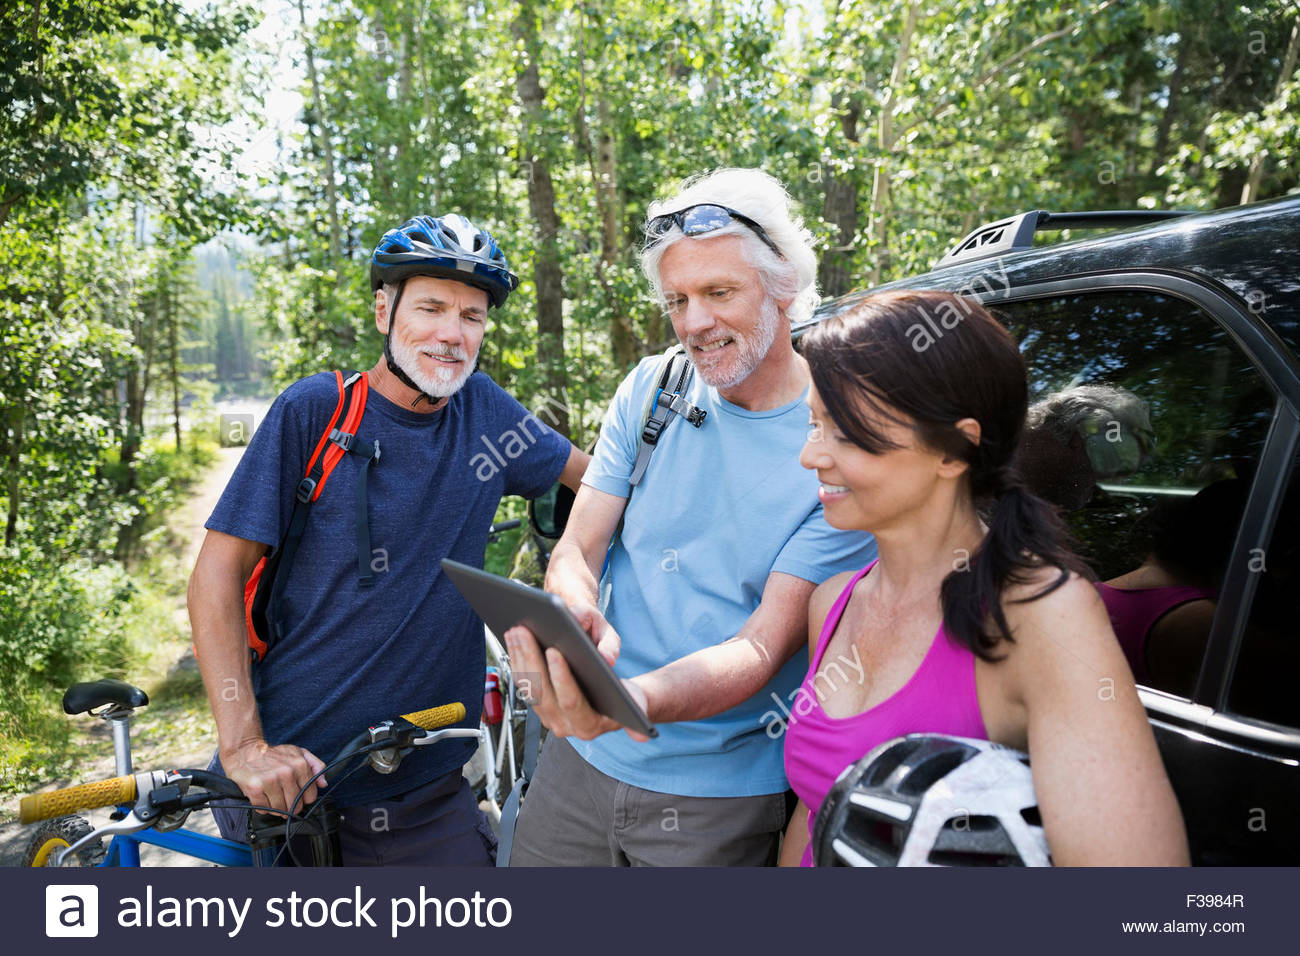 Friends with mountain bike checking digital tablet car - Stock Image